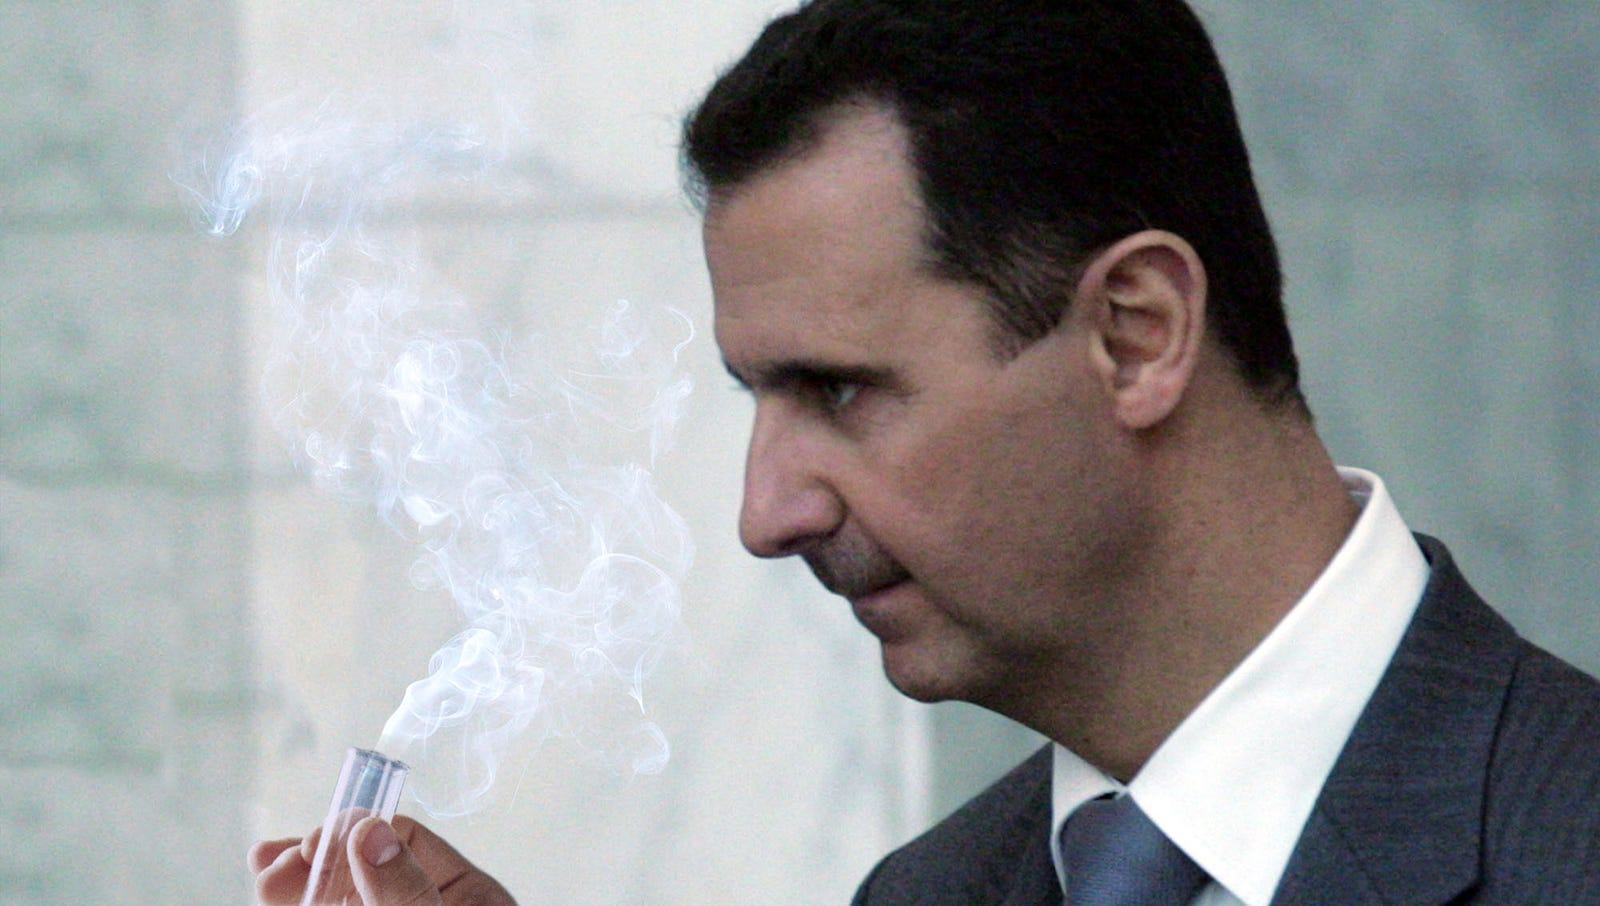 Bashar Al-Assad Tries Tiny Bit Of Sarin Gas On Self To See What It's Like